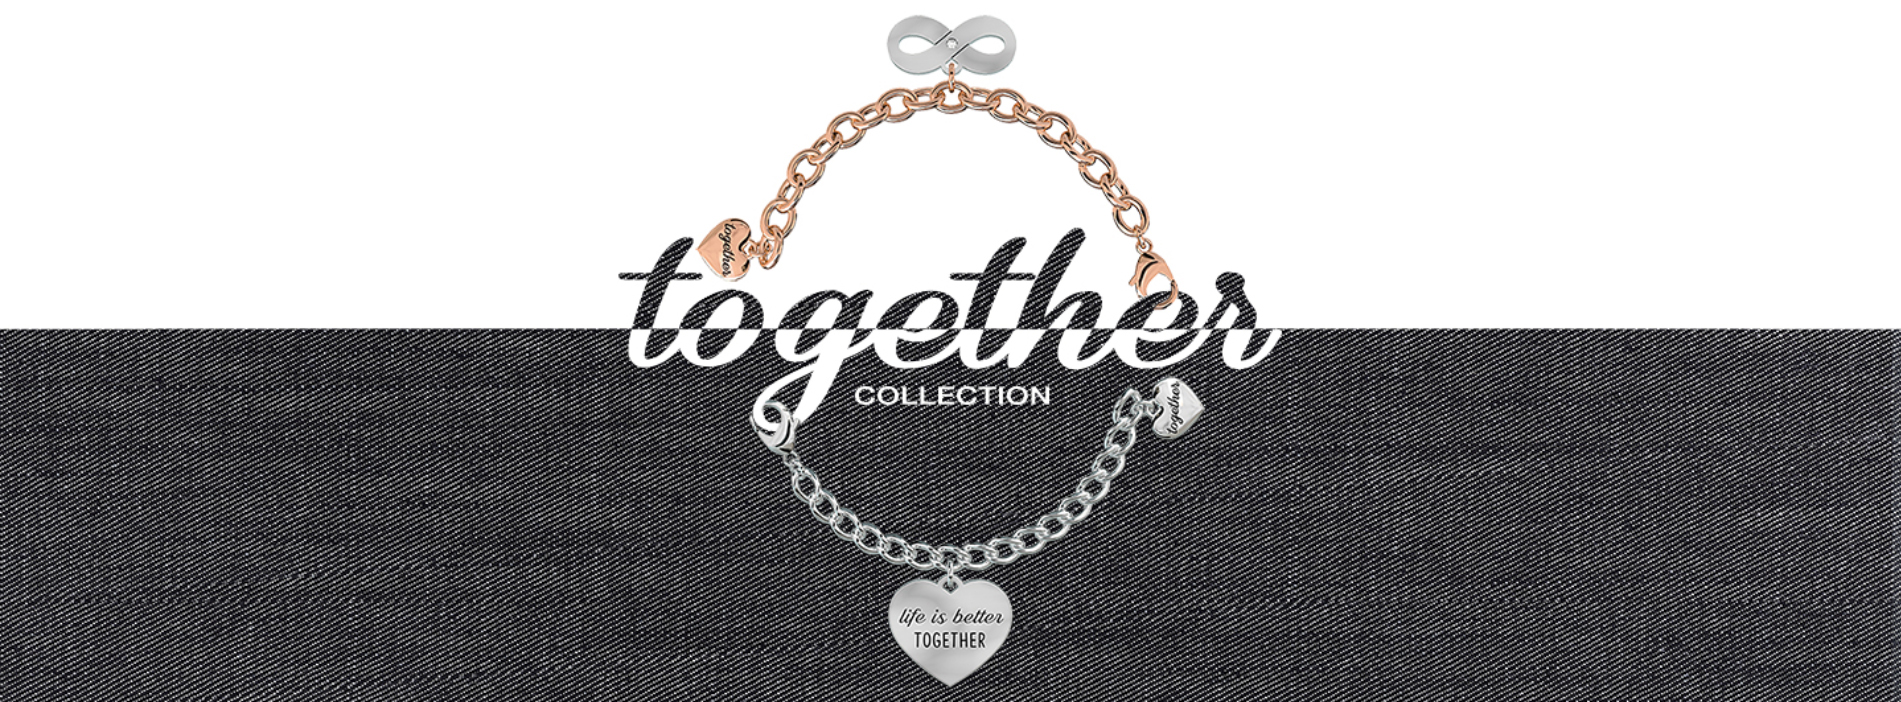 Bracciali 2jewels componibili together donna